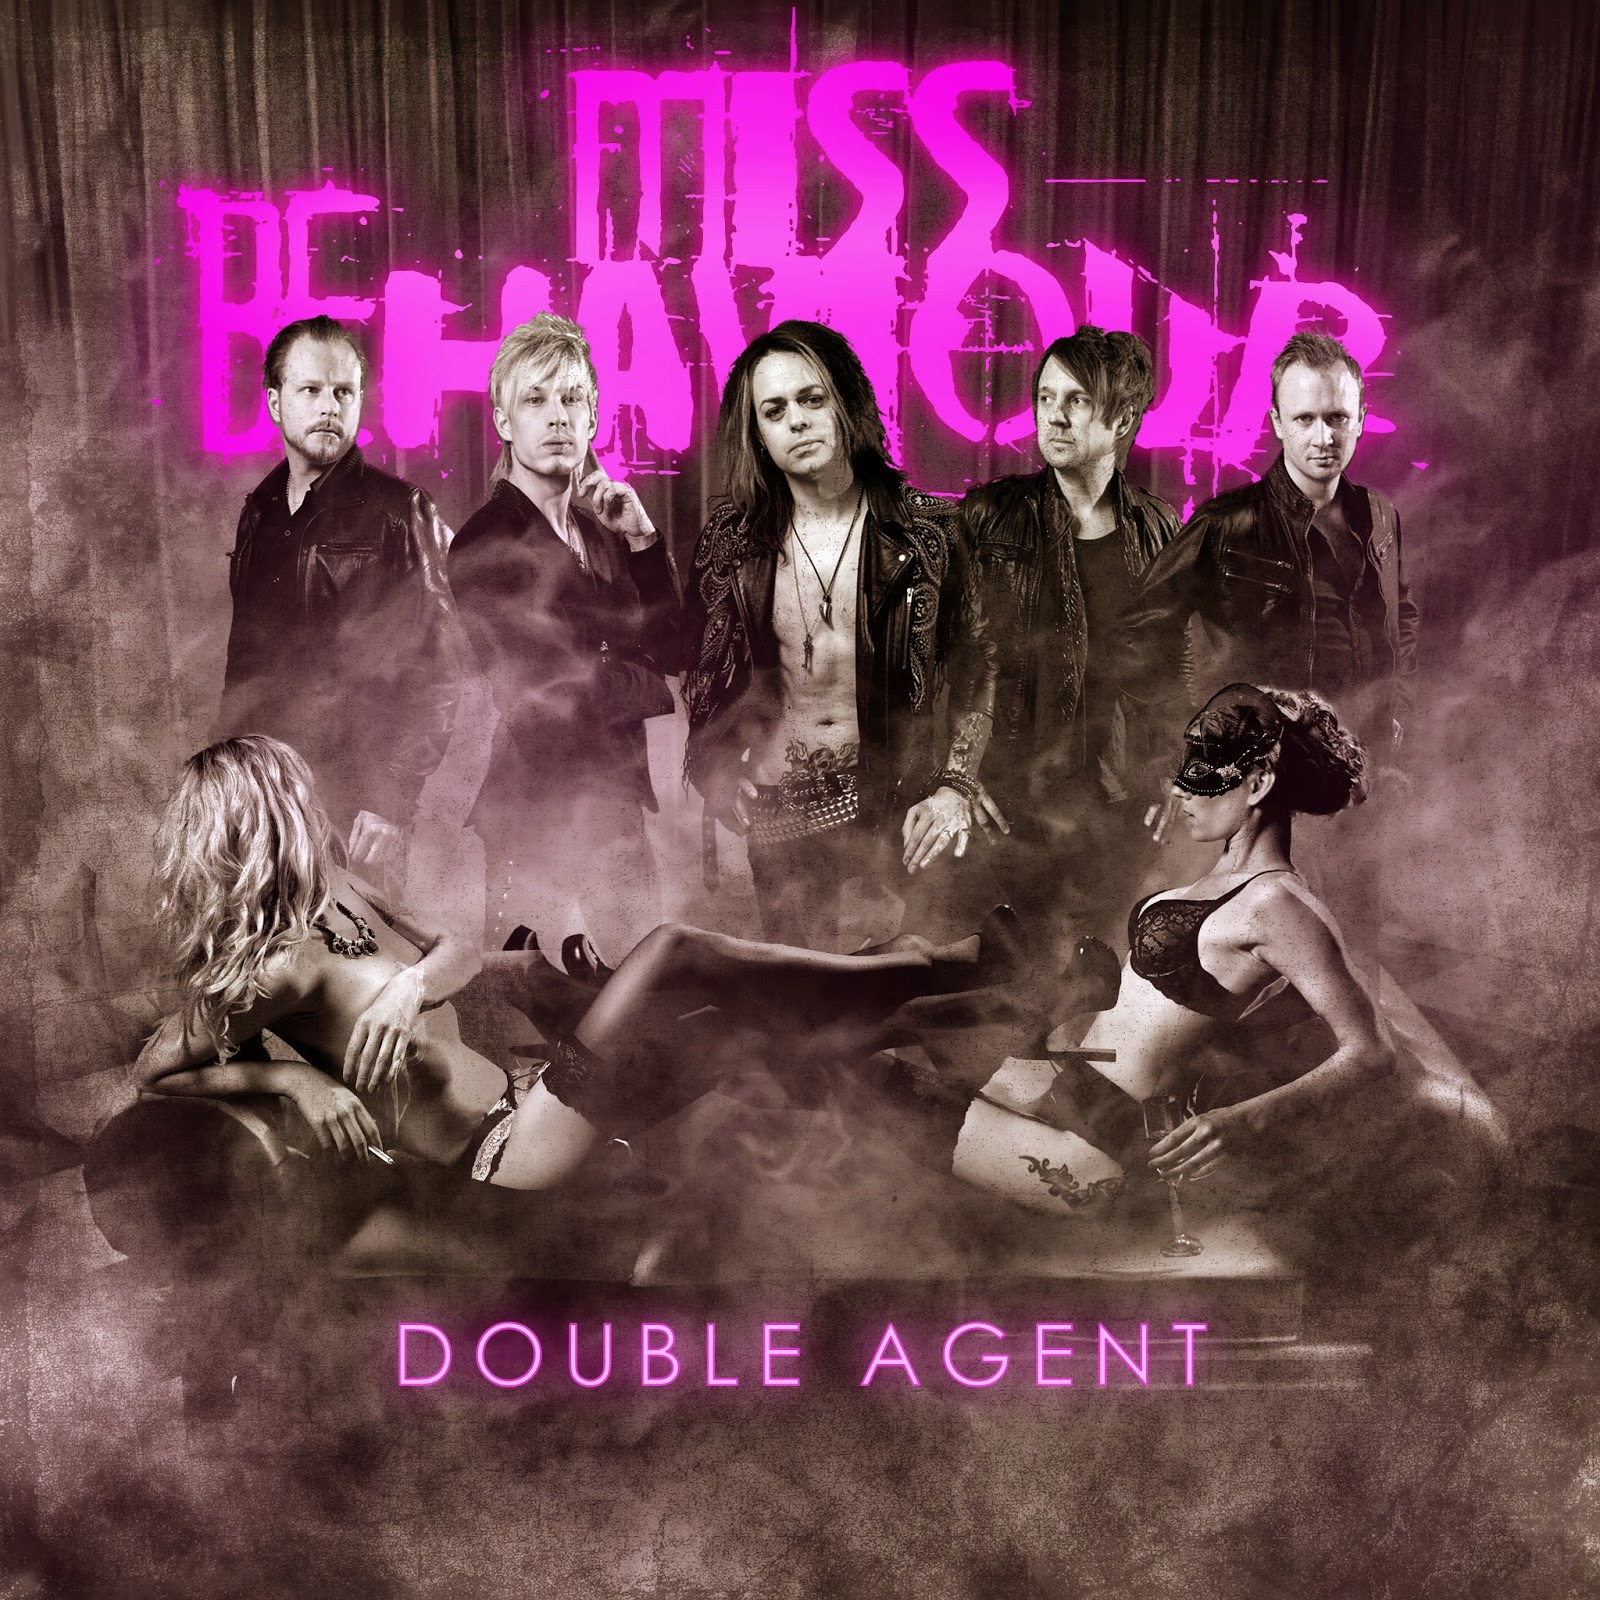 http://rock-and-metal-4-you.blogspot.de/2014/07/cd-review-miss-behaviour-double-agent.html